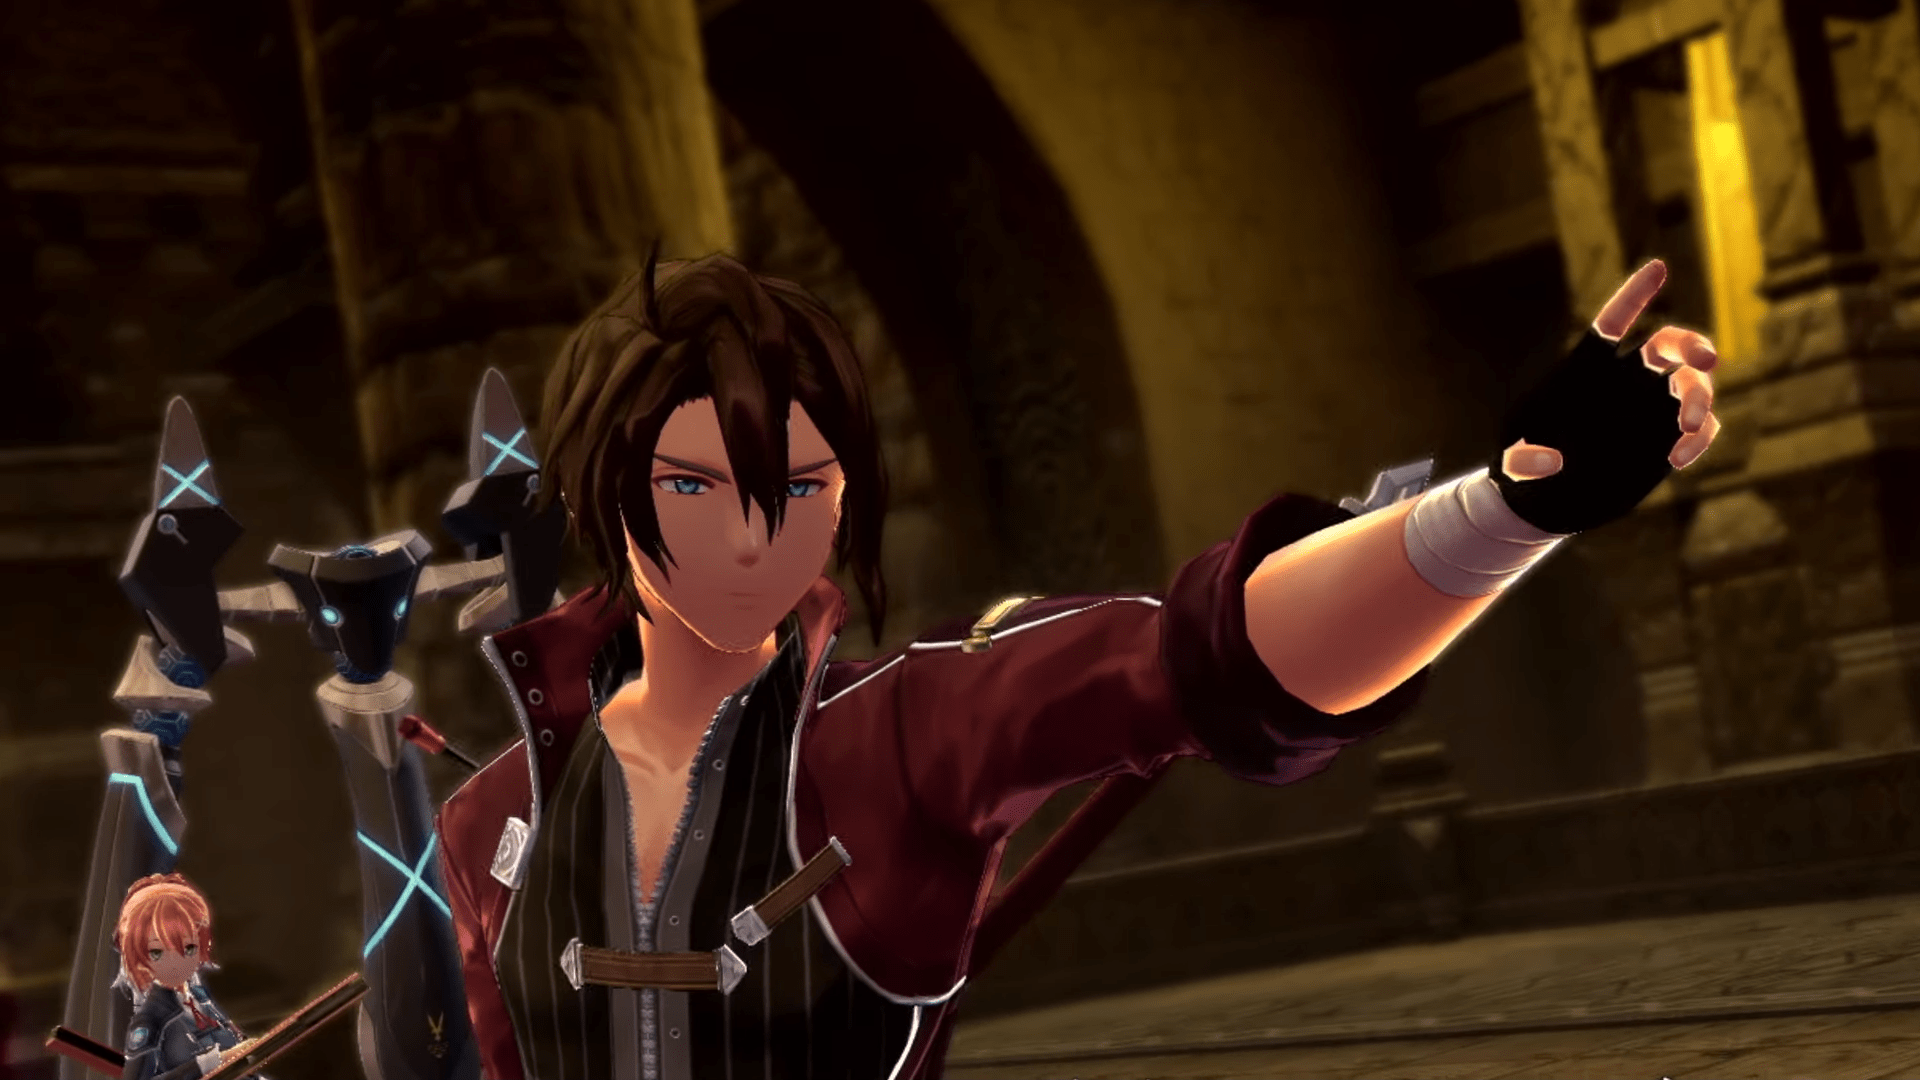 NIS America Is Now Accepting Applications For Private Beta Test of Trails Of Cold Steel III